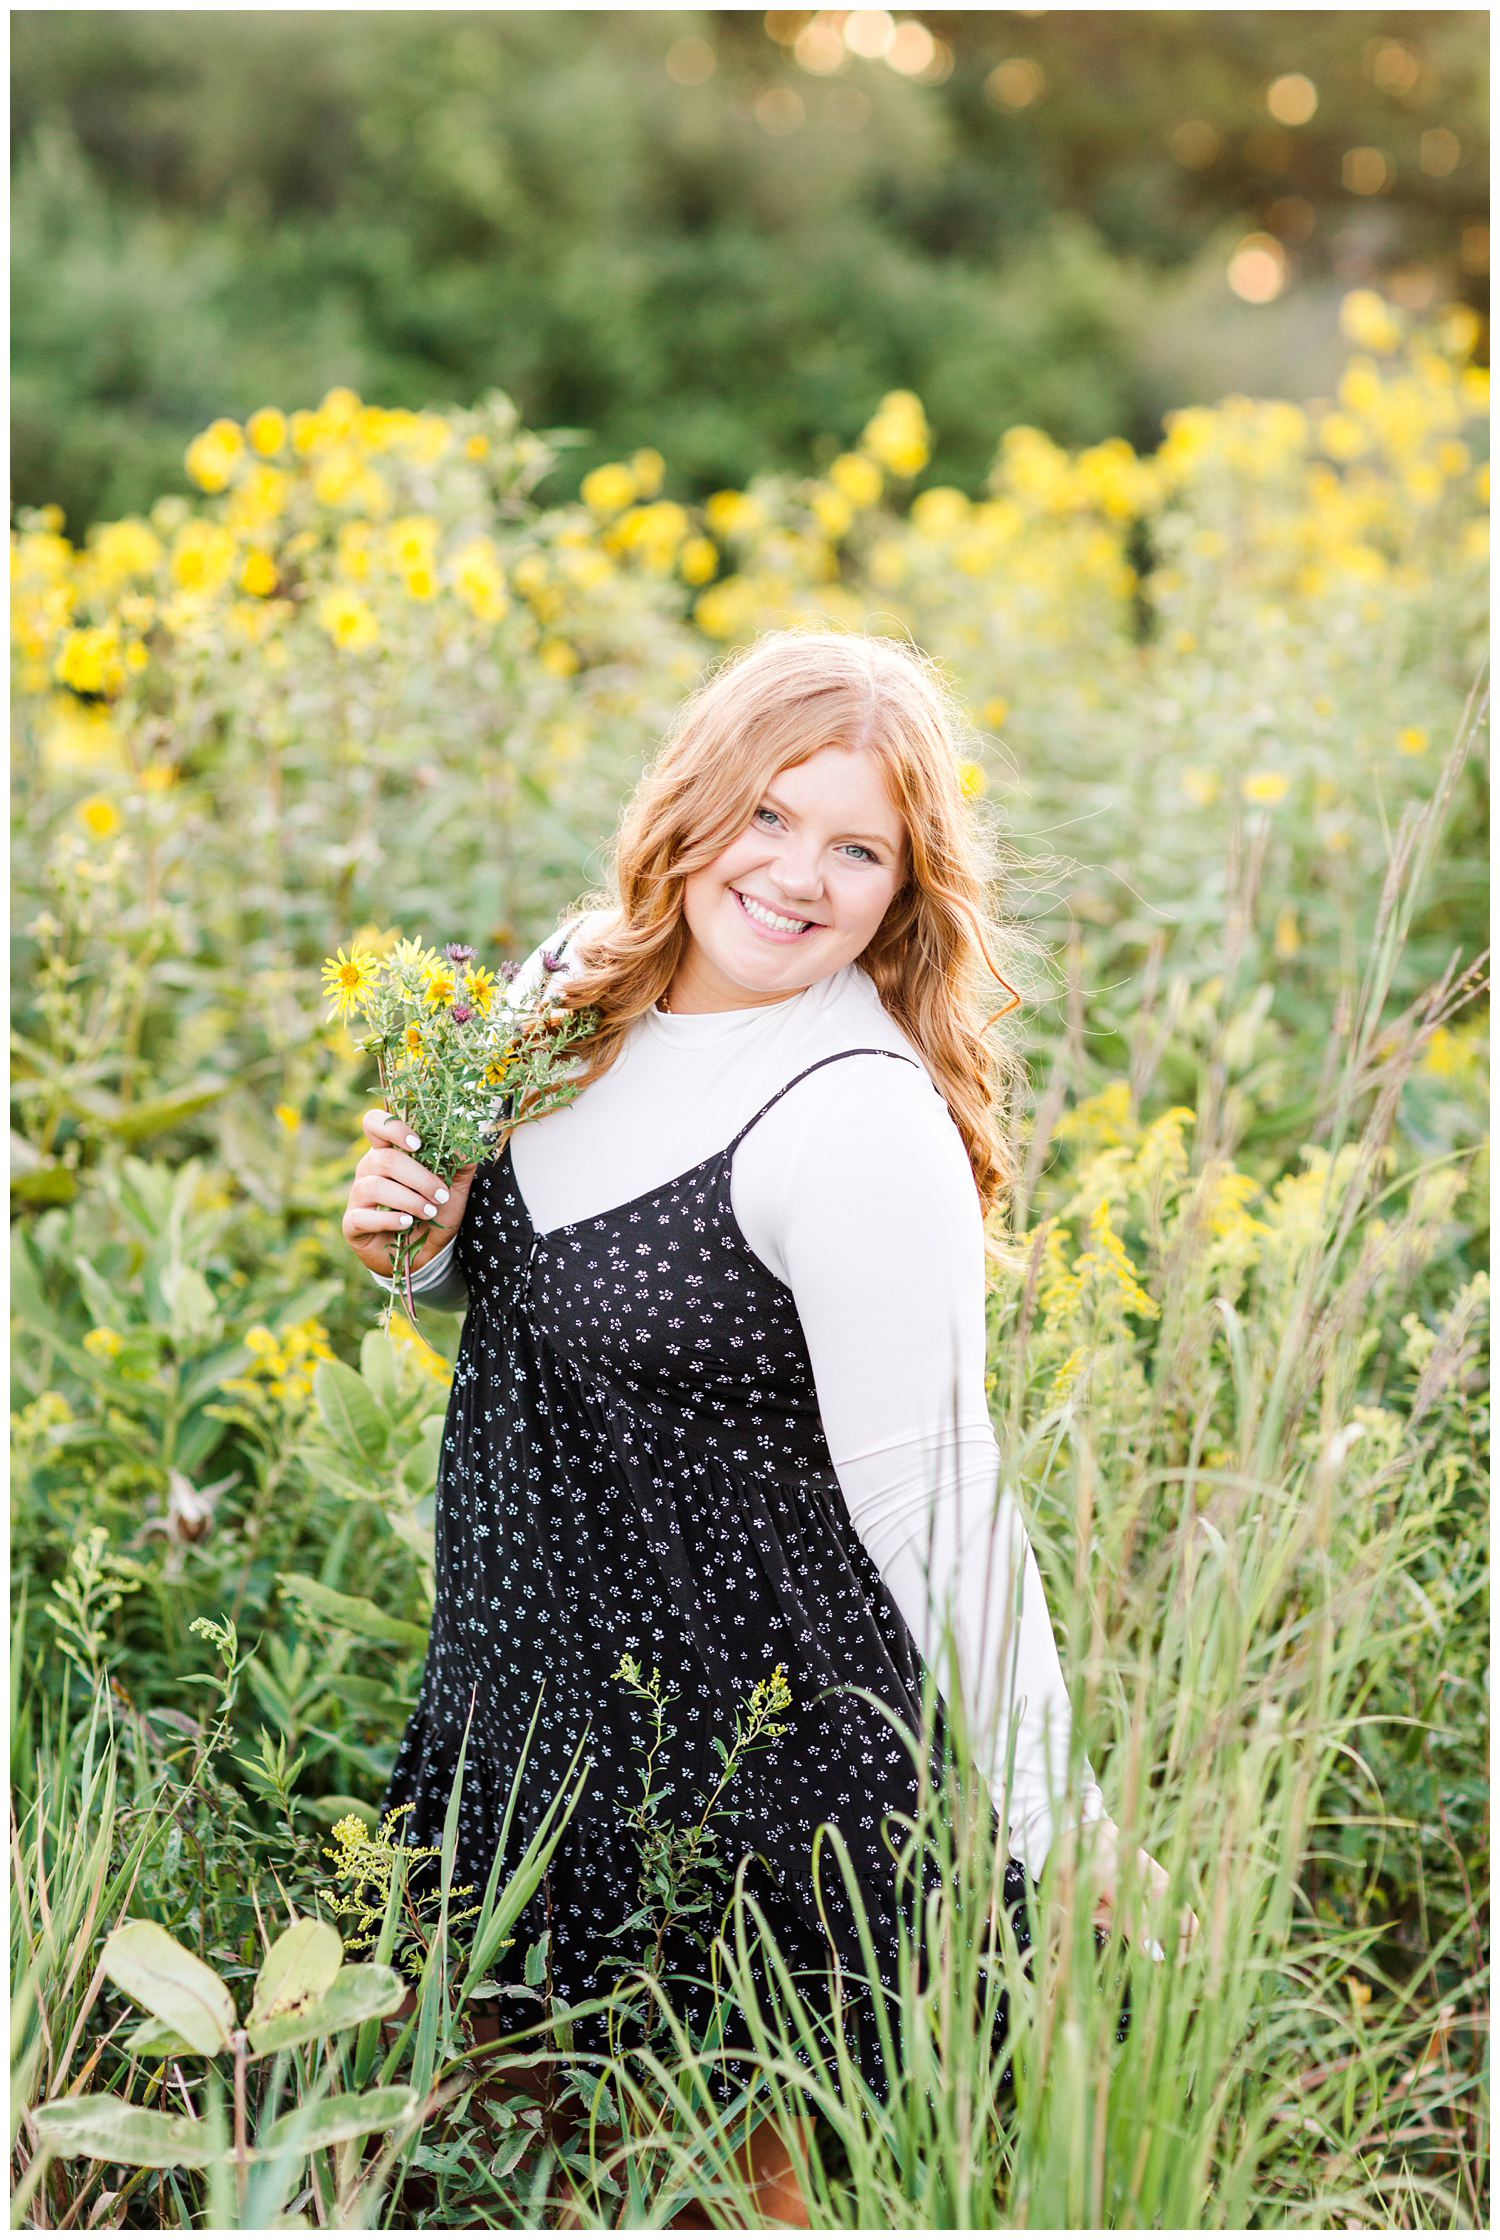 Senior girl wearing a black floral dress stands in a yellow flower field holding a flower bouquet at Water's Edge Nature Center in Algona, Iowa | CB Studio